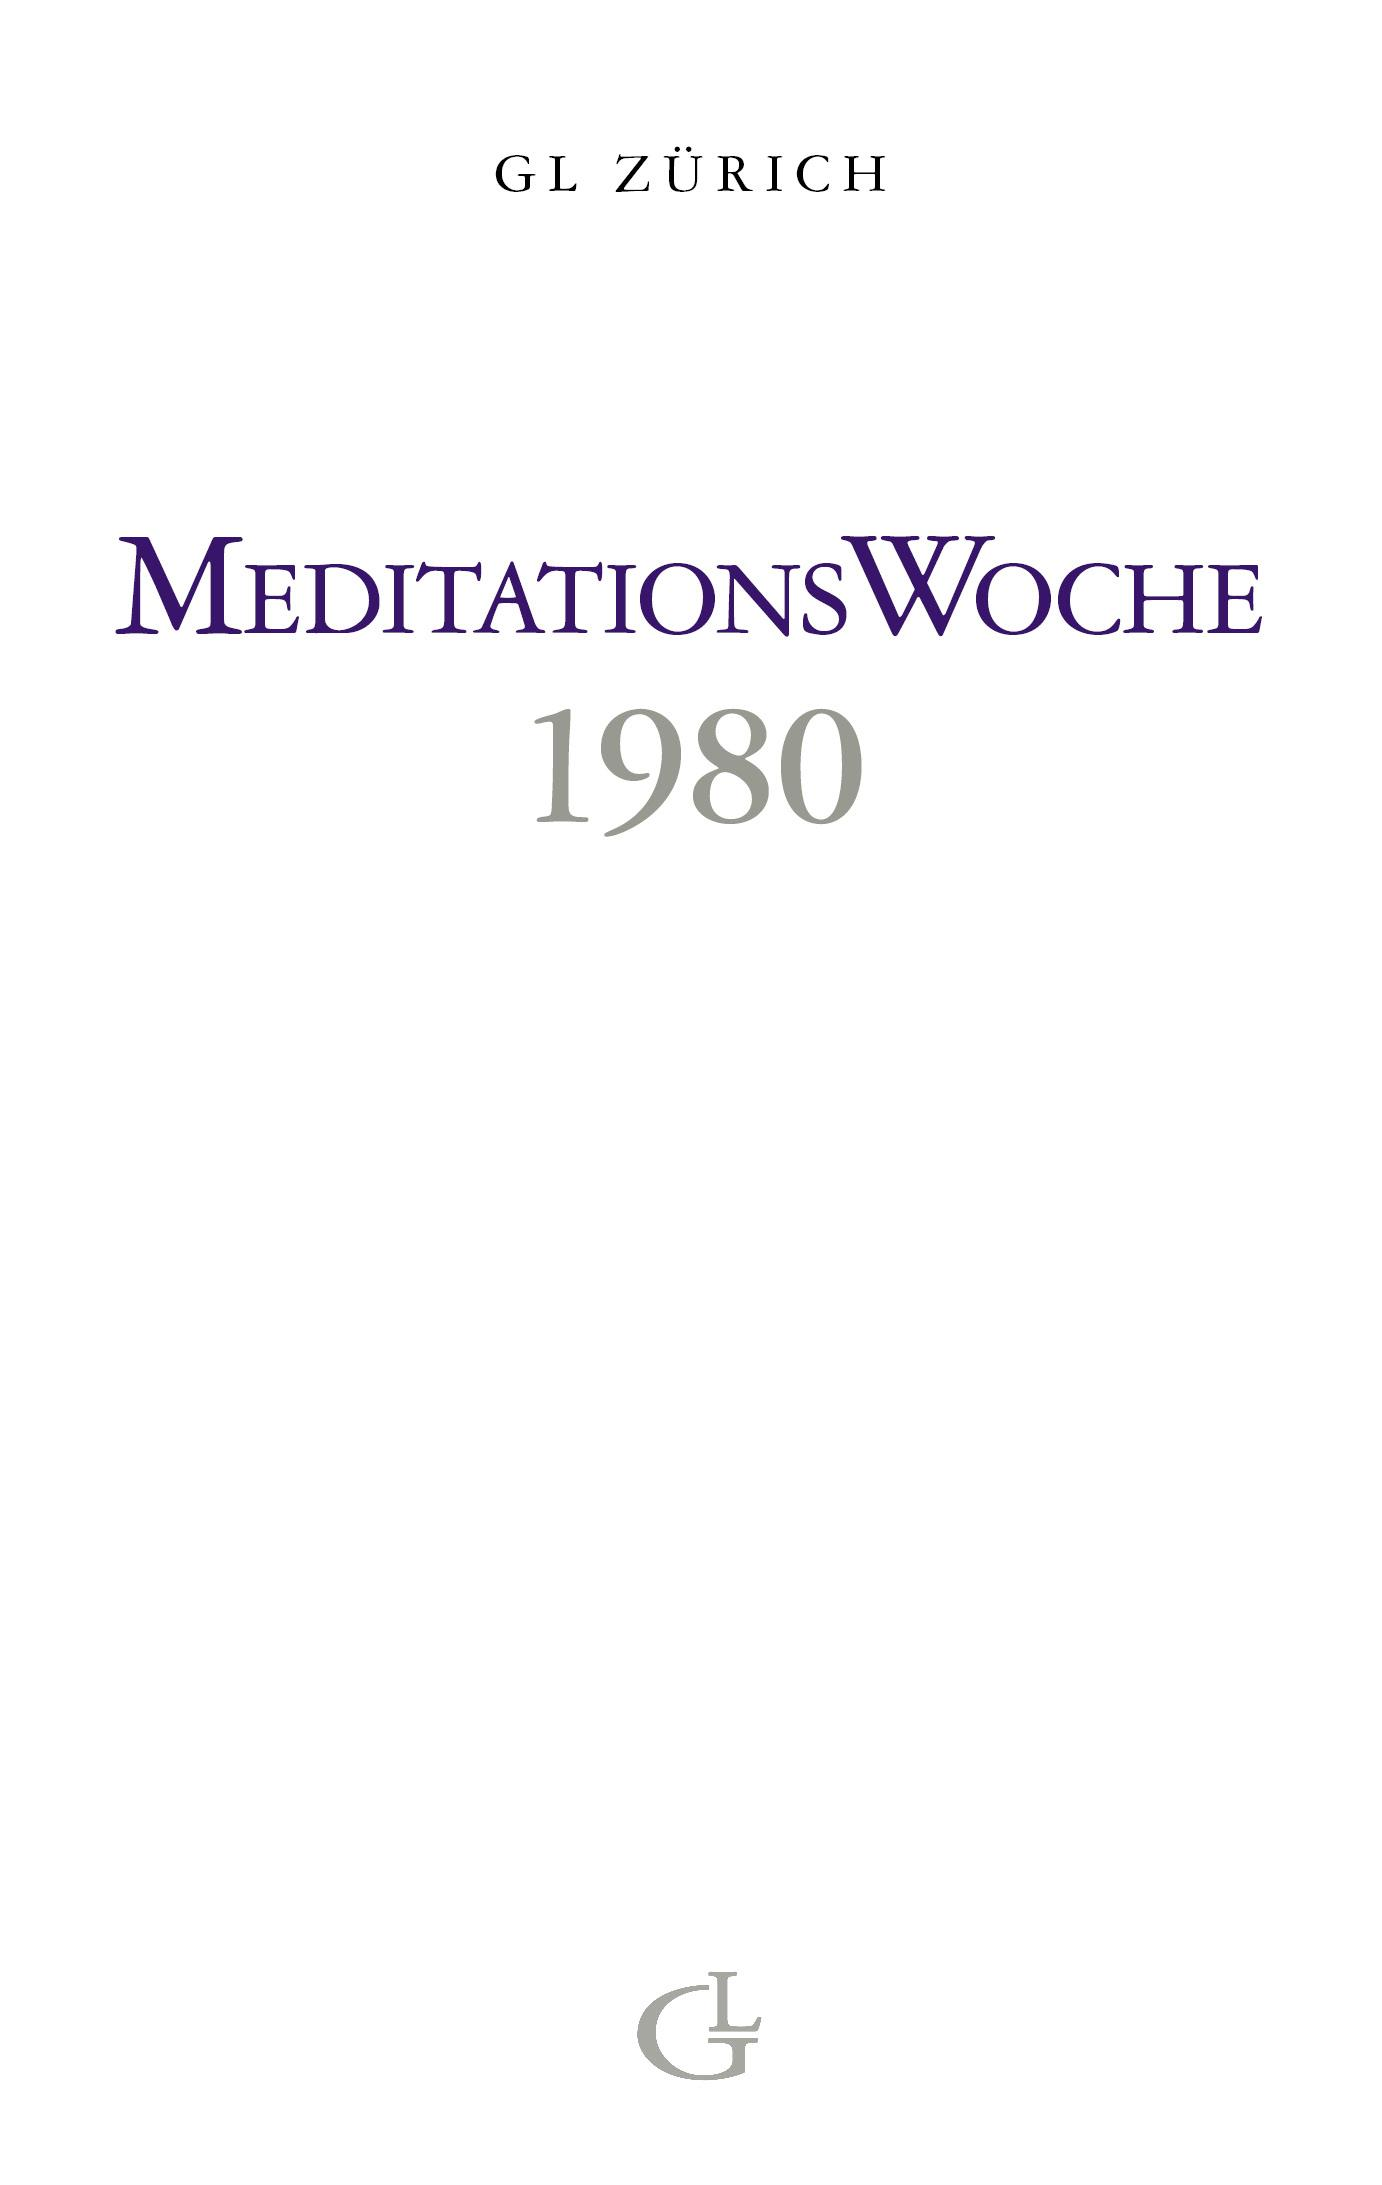 Cover des Buches Meditationswoche 1980 von Medium Beatrice Brunner